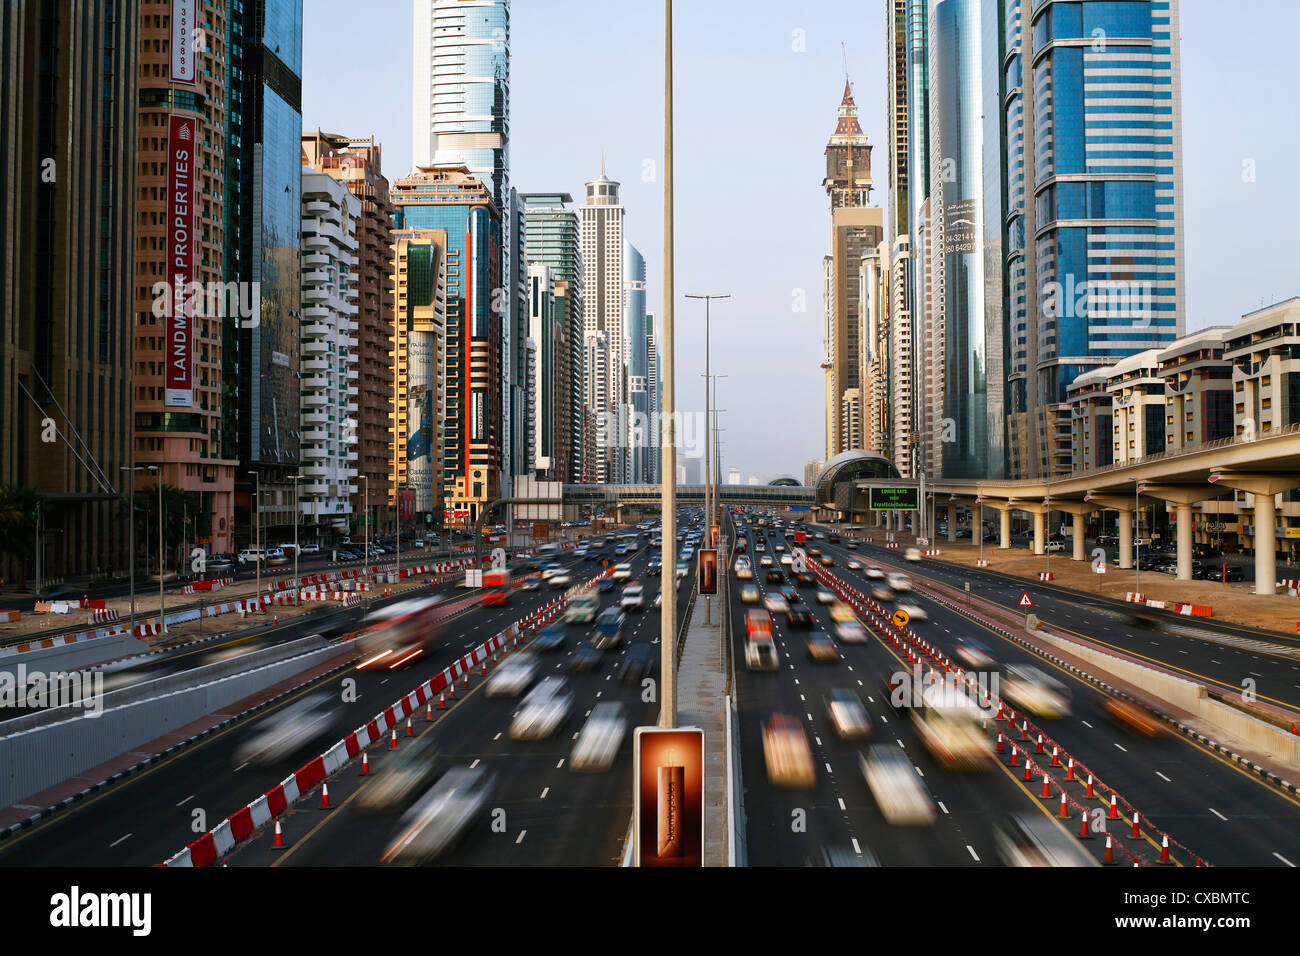 Traffic and new high rise buildings along Sheikh Zayed Road, Dubai, United Arab Emirates, Middle East - Stock Image